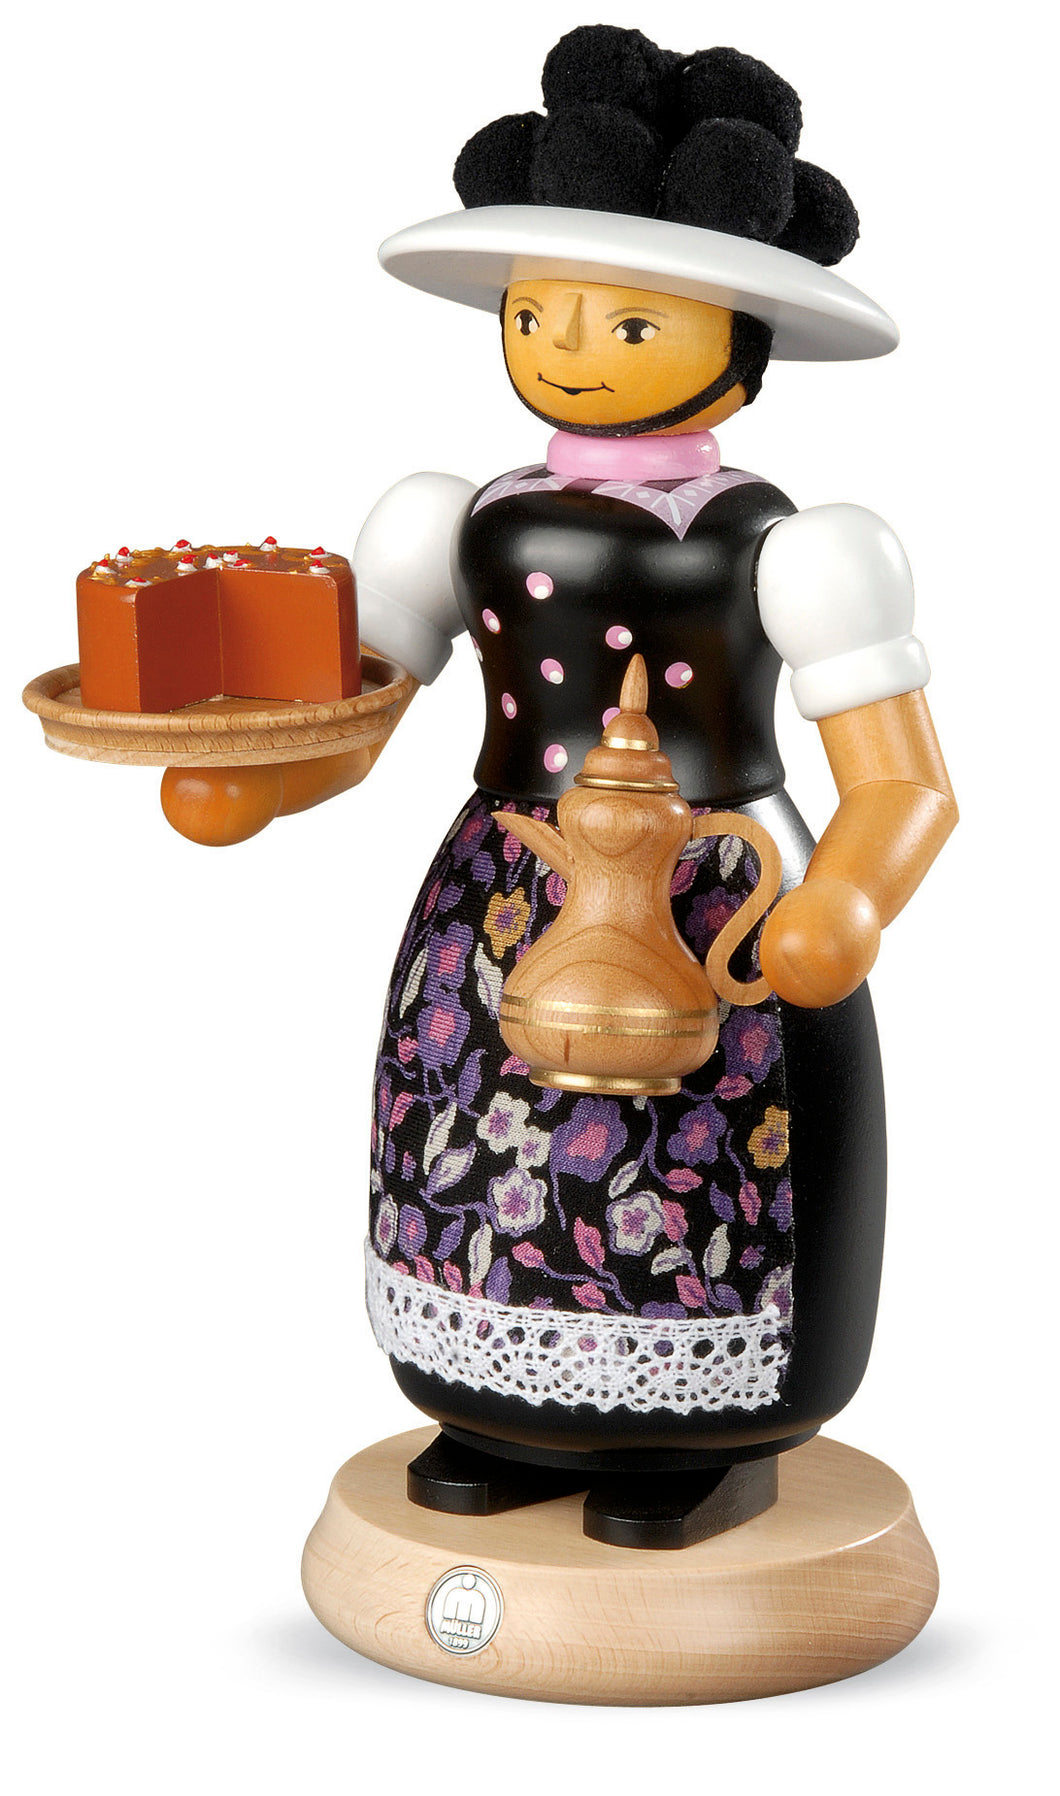 Smoking man, Black-Forest woman with smoking coffeepot